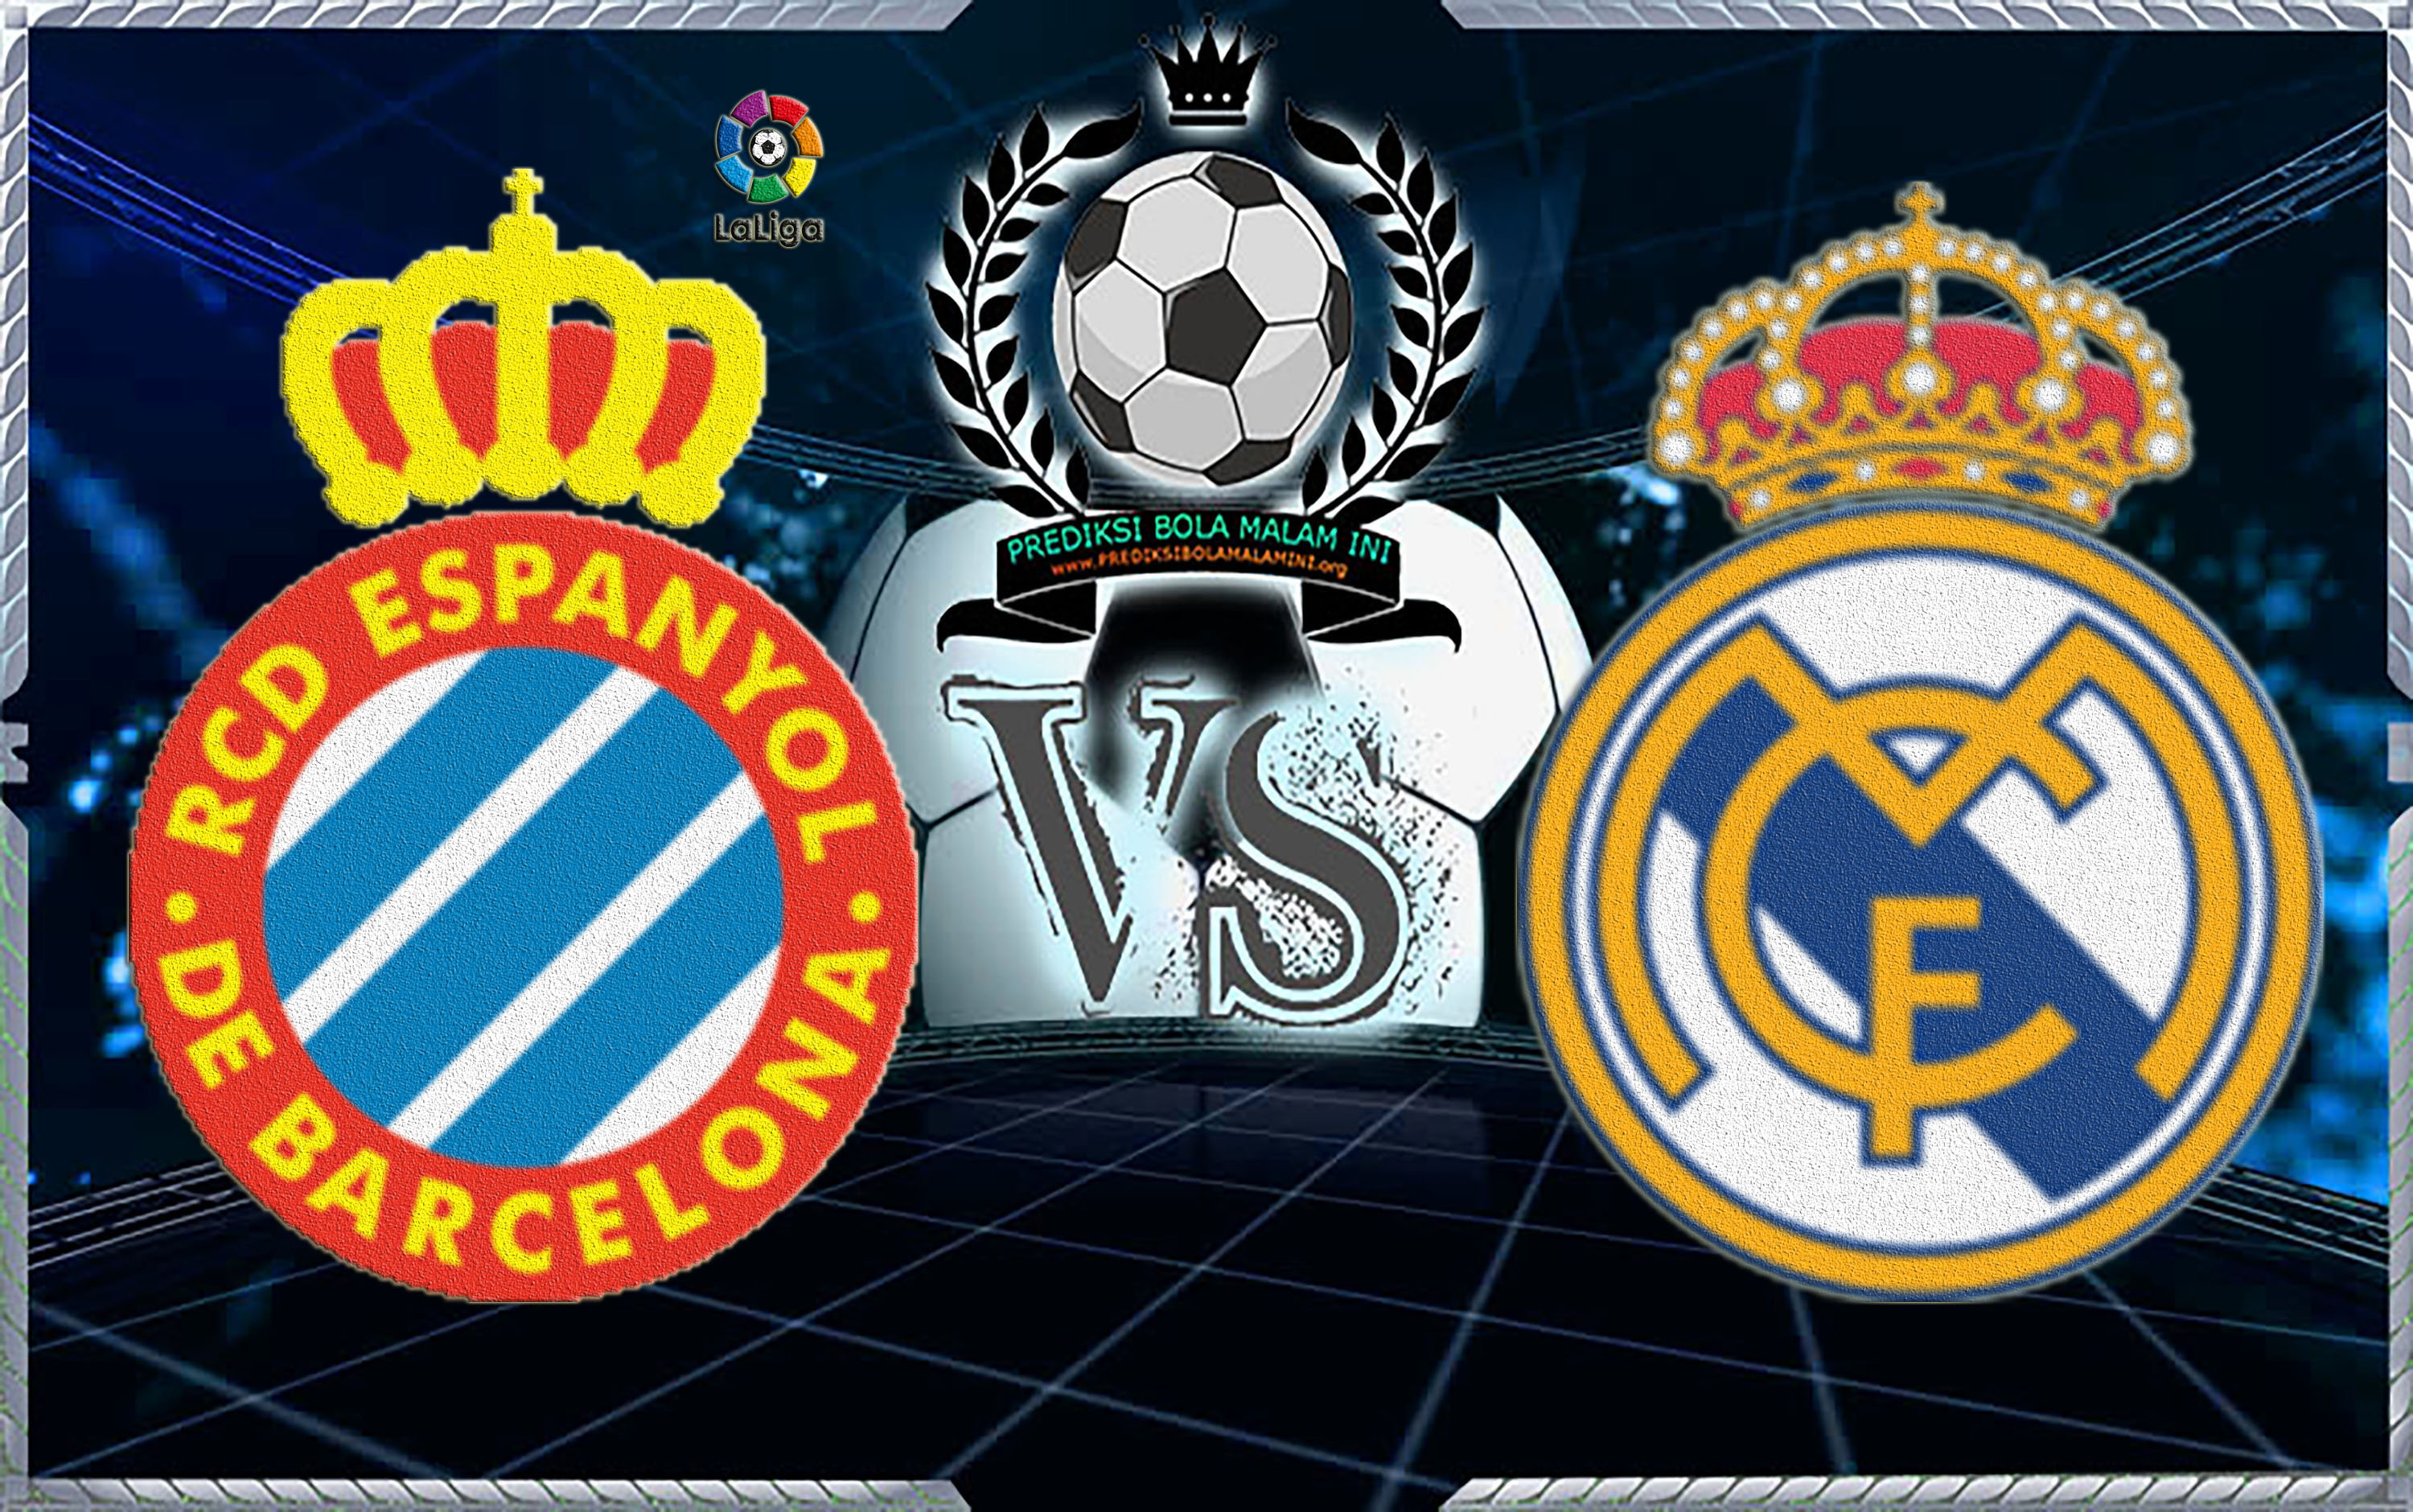 Espanyol Vs Real Madrid &quot;width =&quot; 640 &quot;height =&quot; 401 &quot;/&gt; </p> <p><span style=